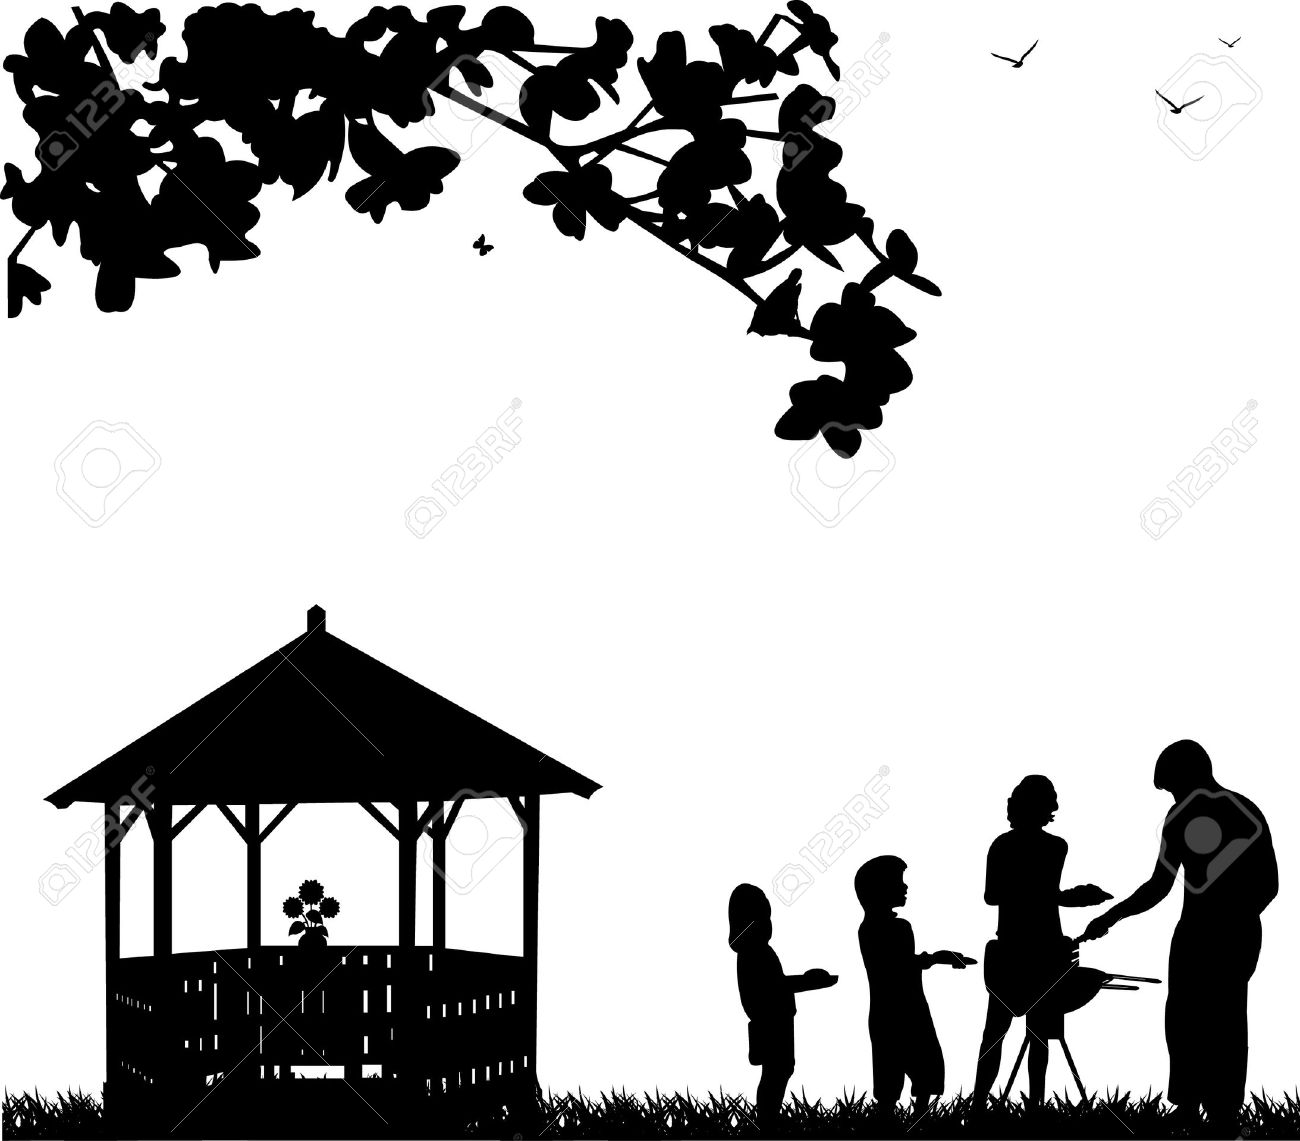 Family barbecue and picnic in the garden next to the arbor or summer house and butterflies flying under a tree silhouette Stock Vector - 12799136